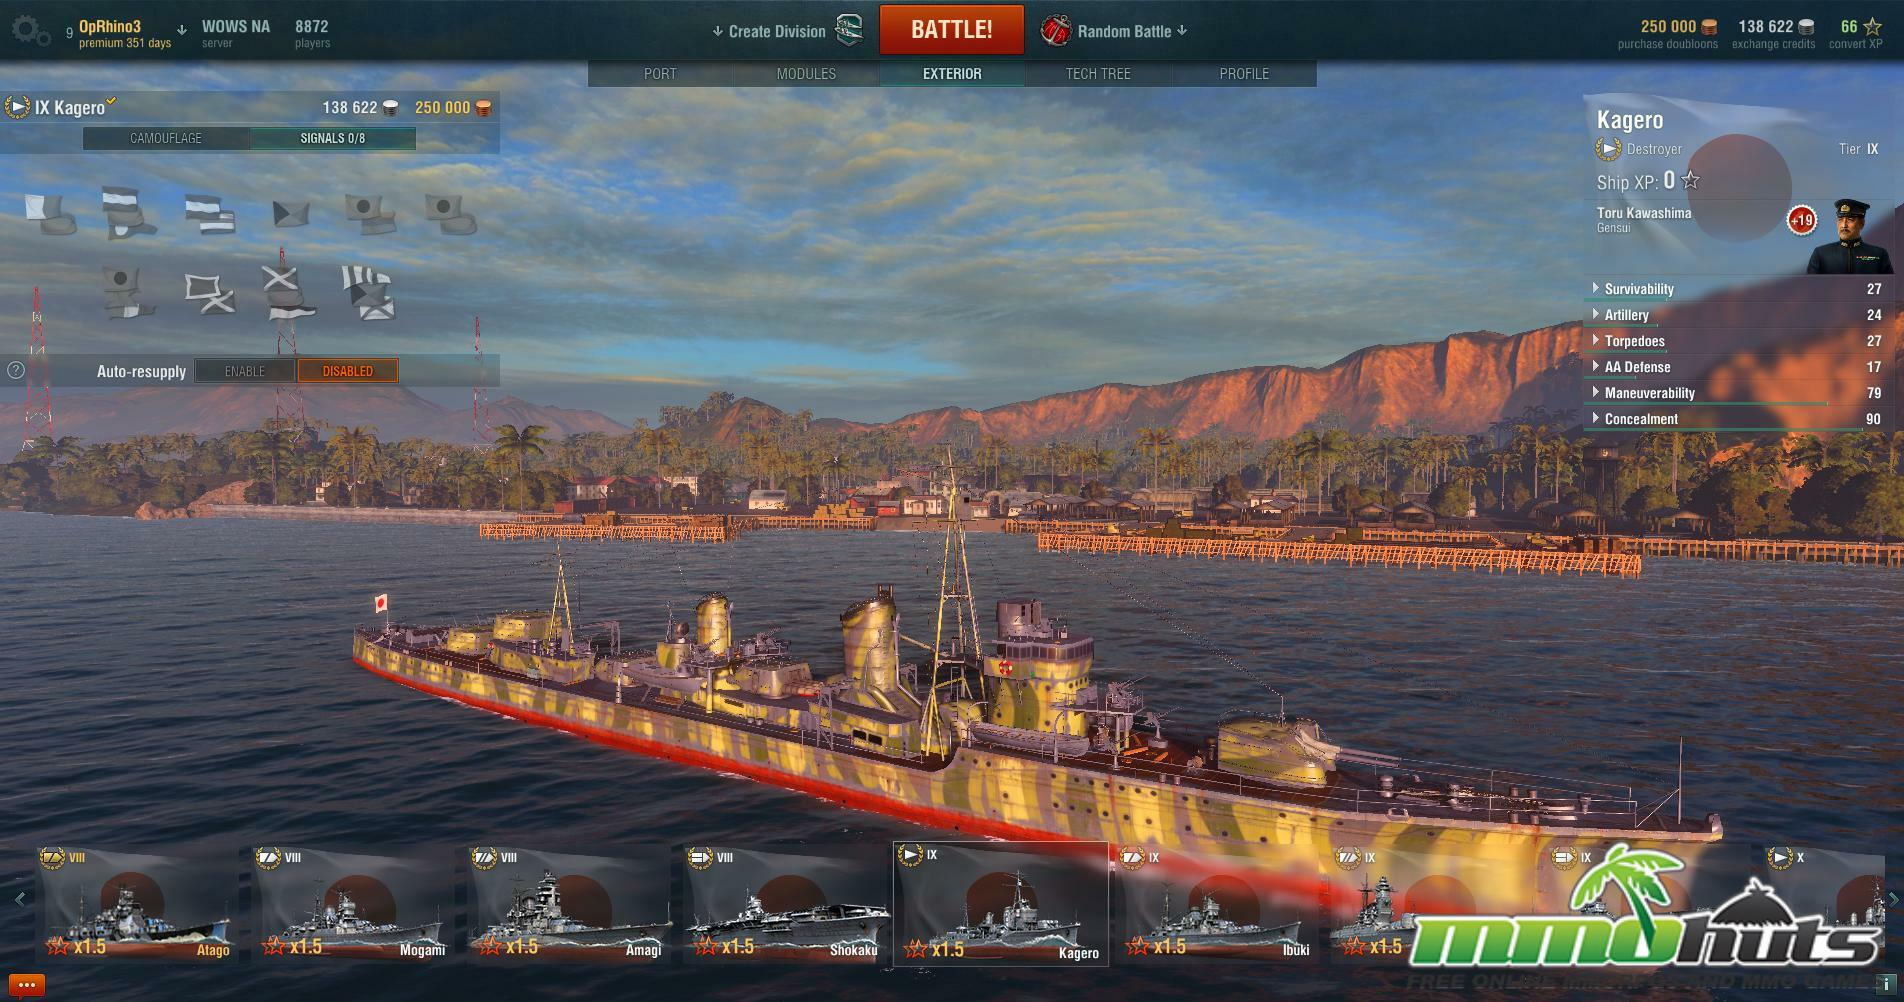 worldofwarships 2015-10-01 16-19-51-67